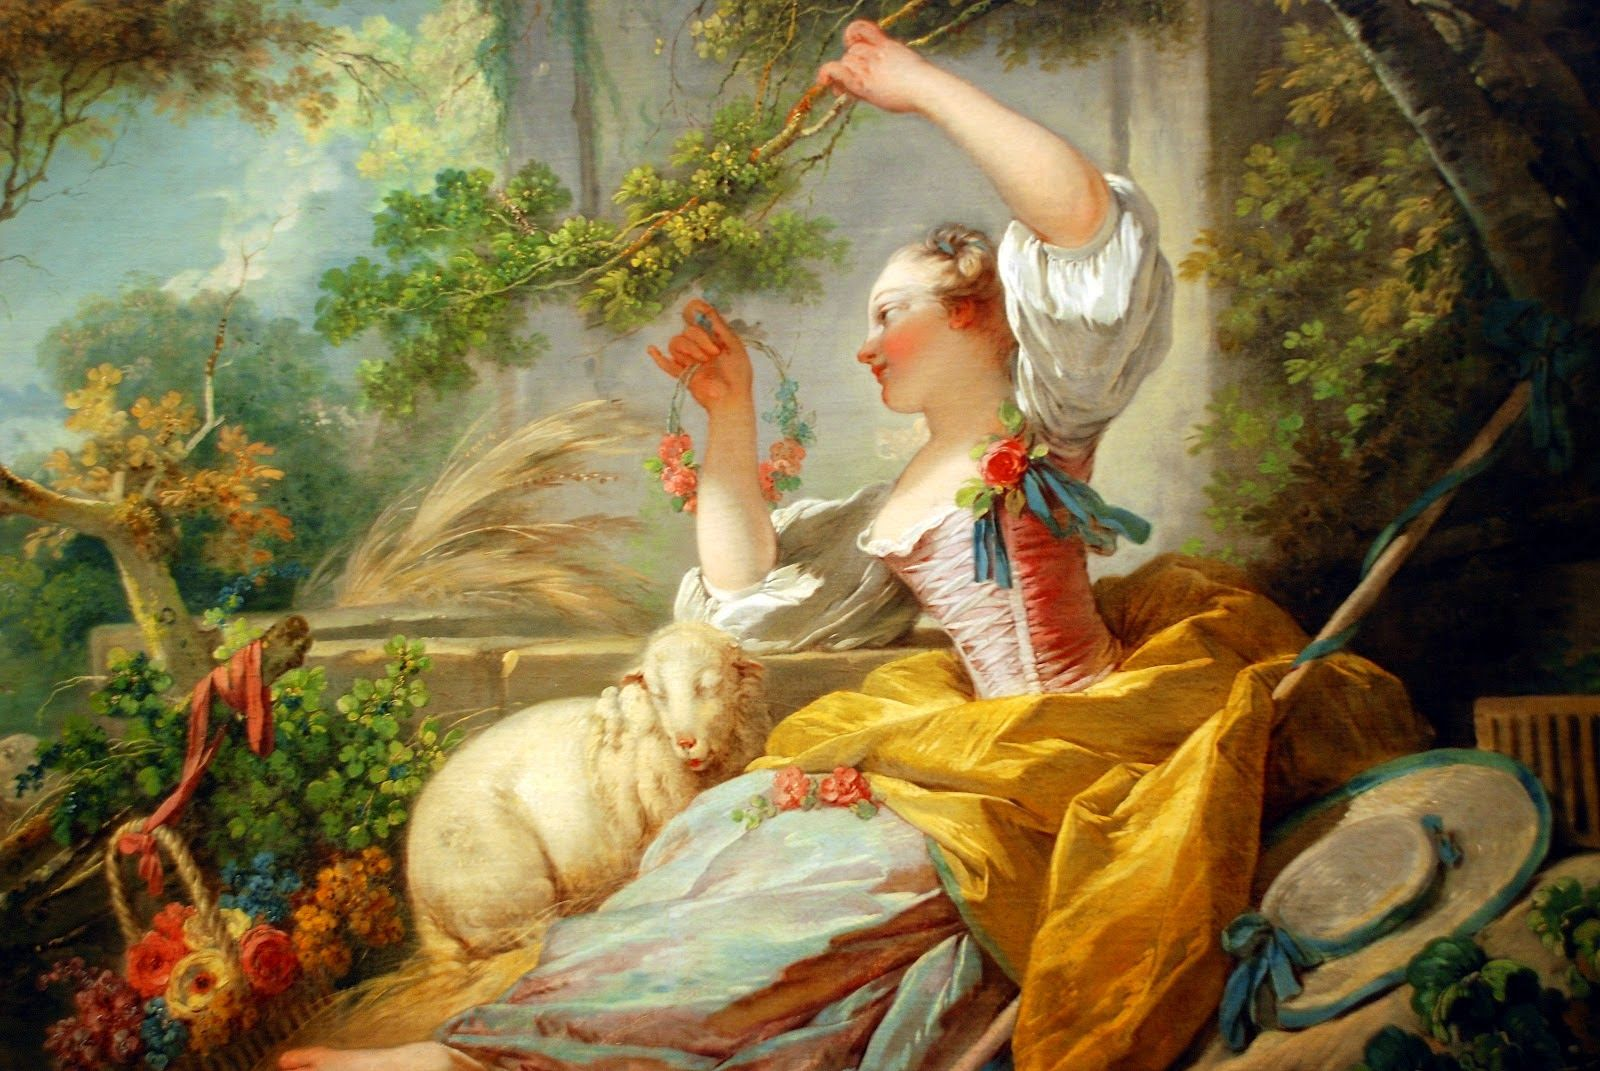 Jean Honor     Fragonard   Pinterest   Rococo  Art history and Paintings Jean Honor     Fragonard   Rococo Era painter   Tutt Art    Pittura     Scultura      Poesia     Musica